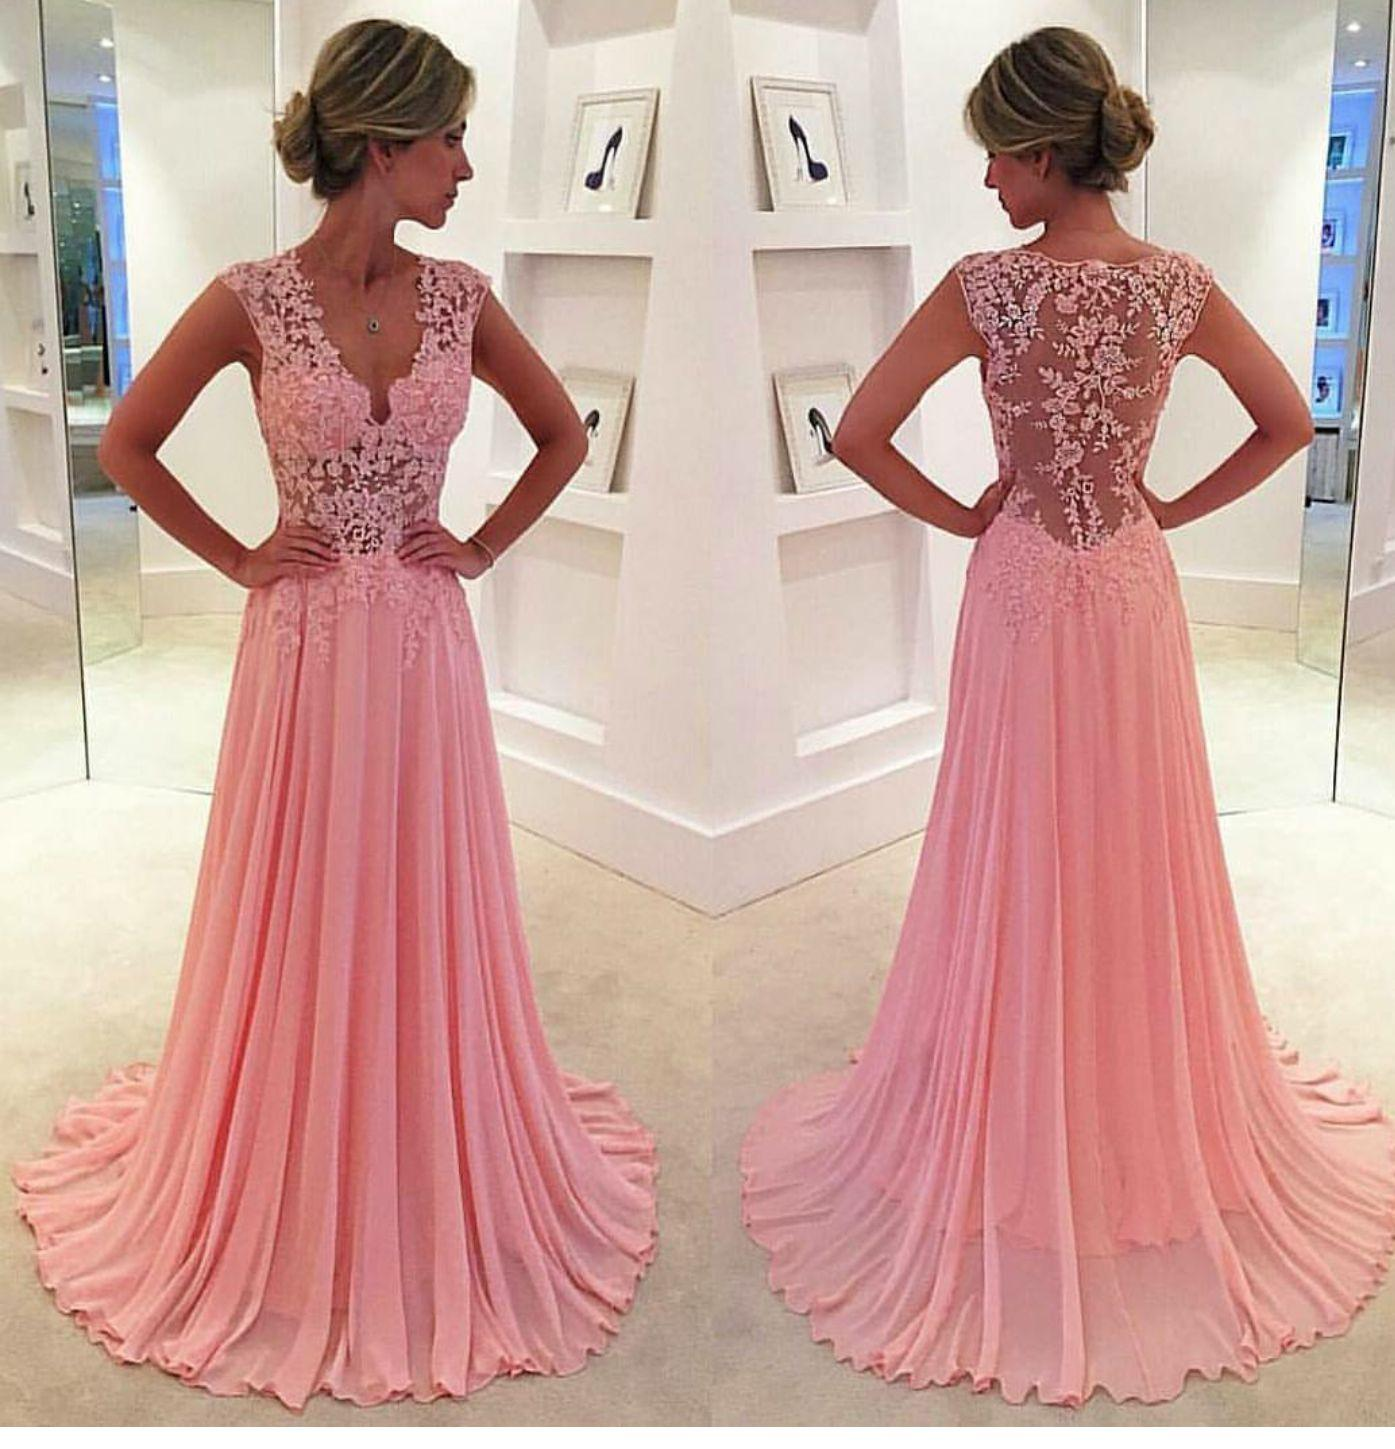 a4ddf3ed78890 2017 Prom Dresses V Neck Pink Sheer Lace Chiffon A Line Floor Length Long  Evening Party Gowns Prom Dress Websites Uk Prom Dress White From  Hua yi zhang